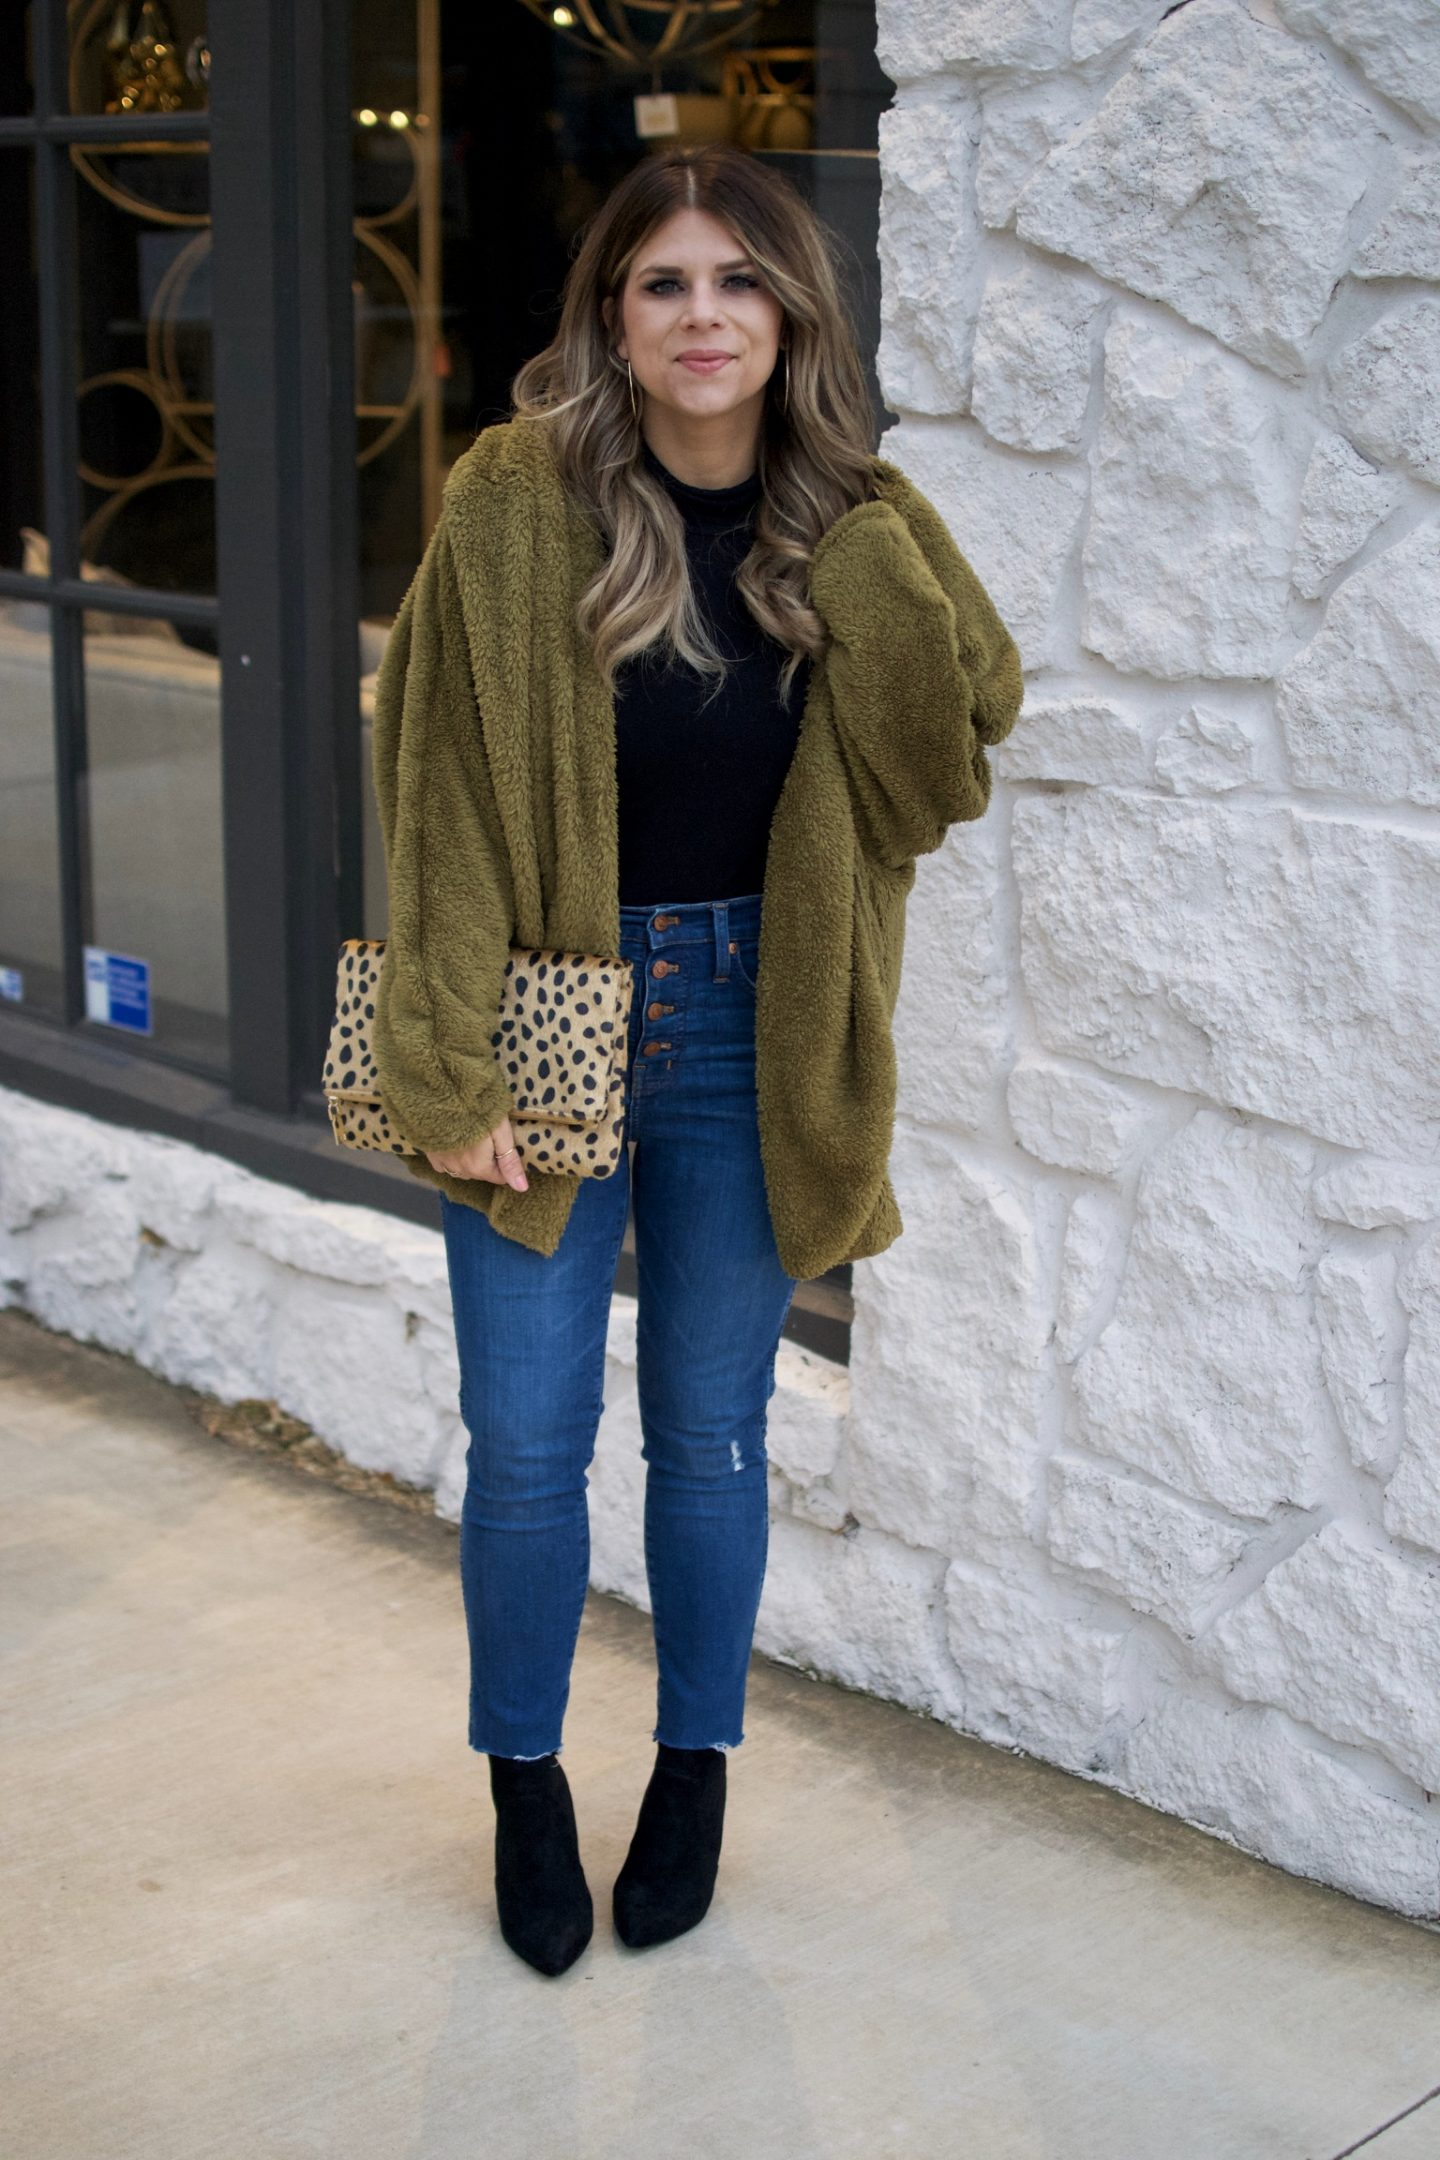 Olive, Teddy Bear Jacket, Coat, Winter Style, Sock Booties, Madewell, Leopard Clutch